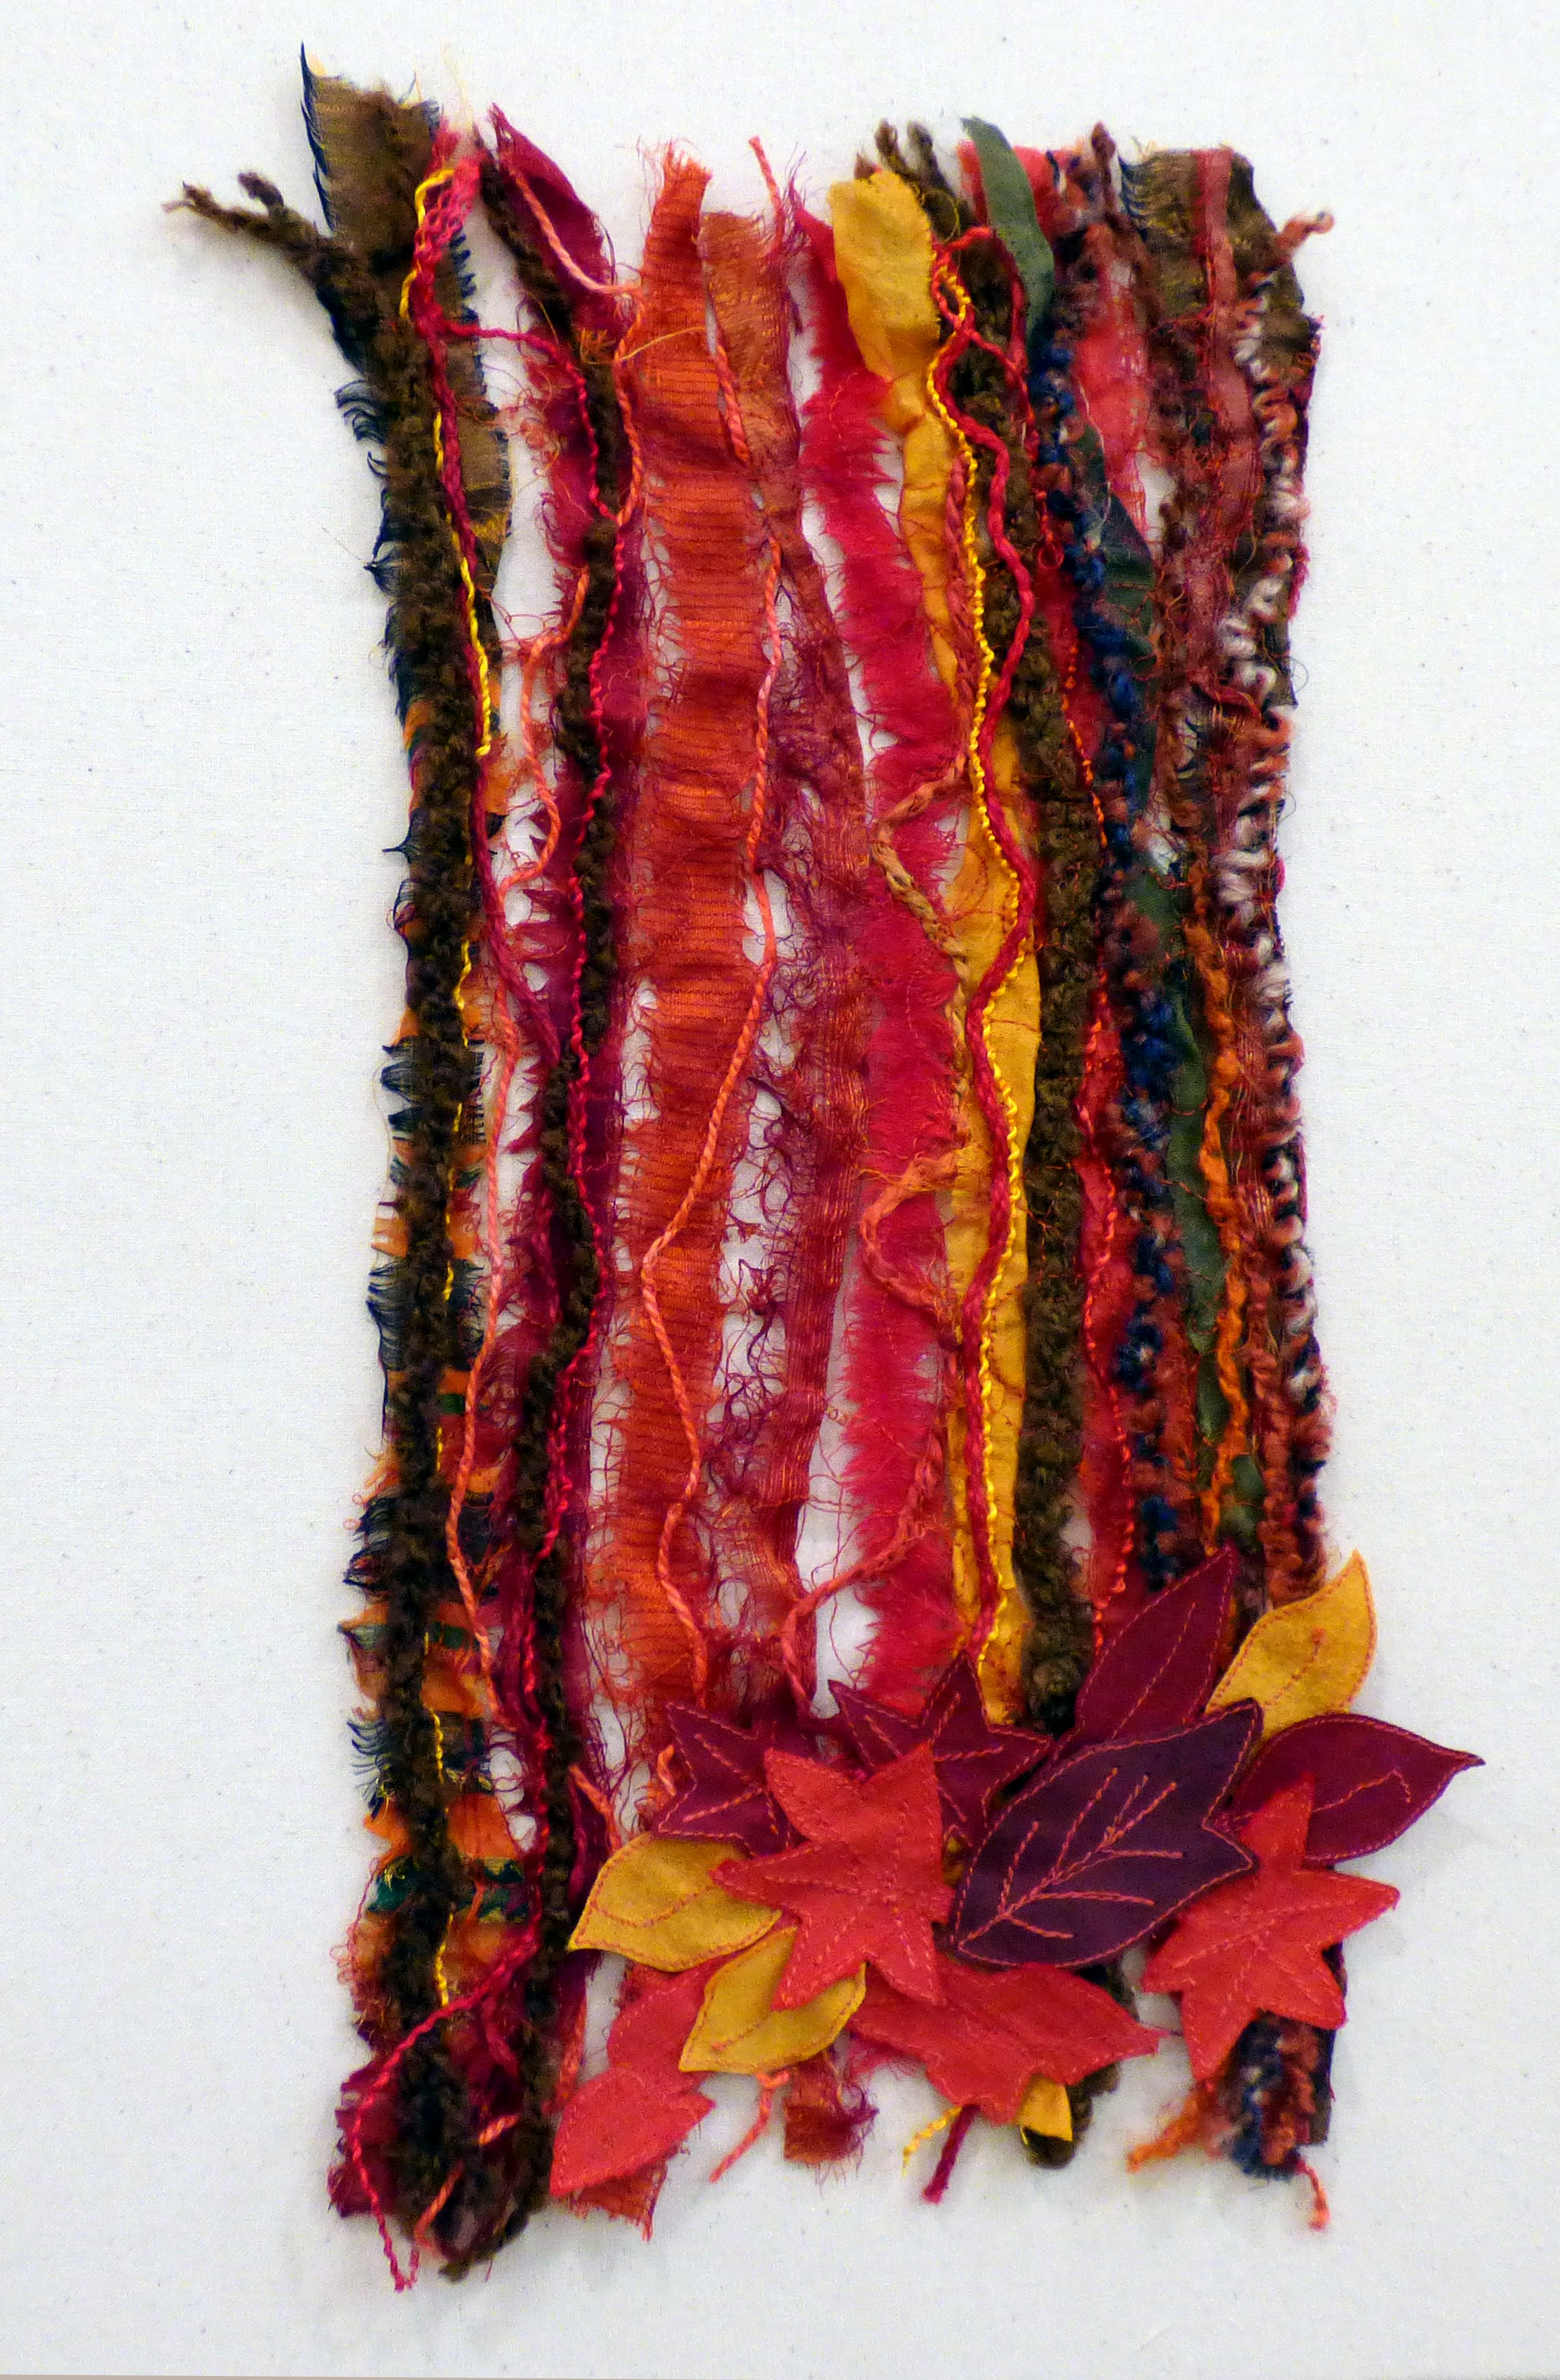 TREES AND LEAVES: AUTUMN by Carol Condliffe, Macclesfield & District EG, machine stitching and couching